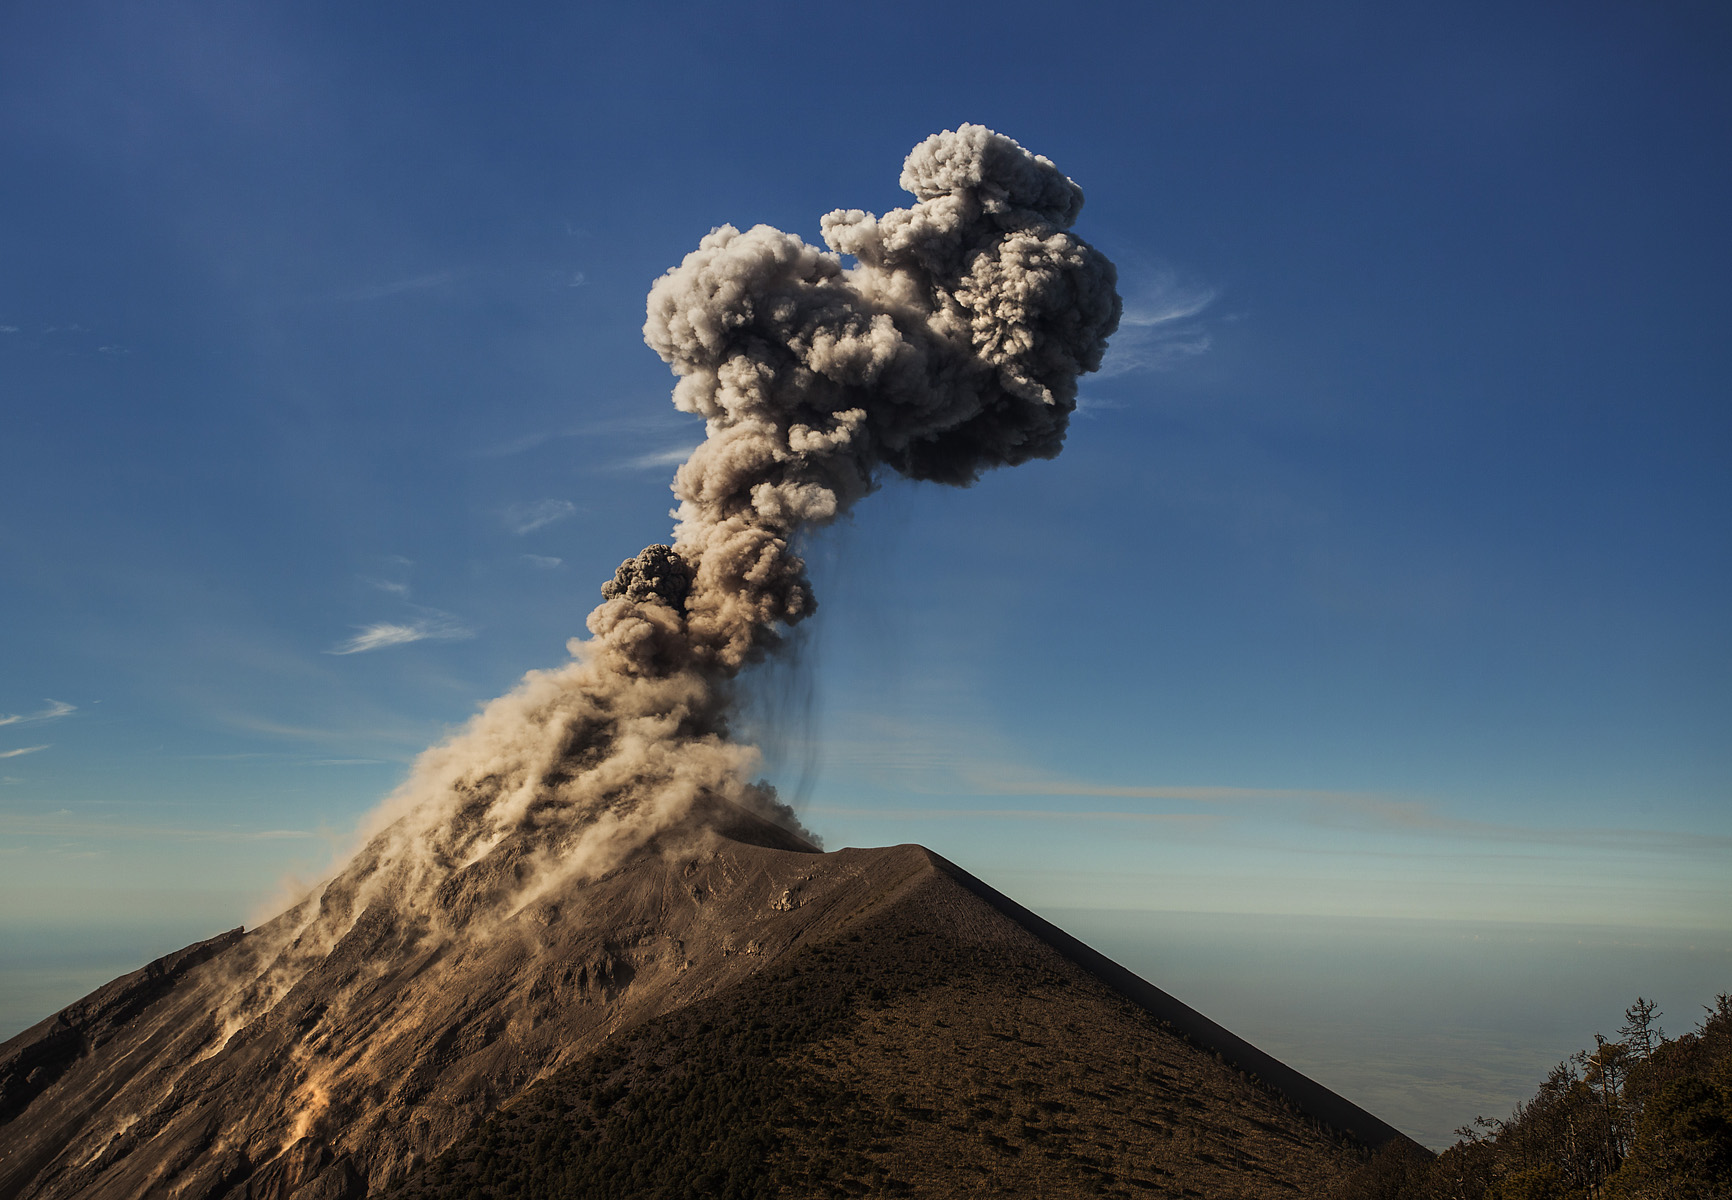 the last (and largest) eruption we saw before heading back down